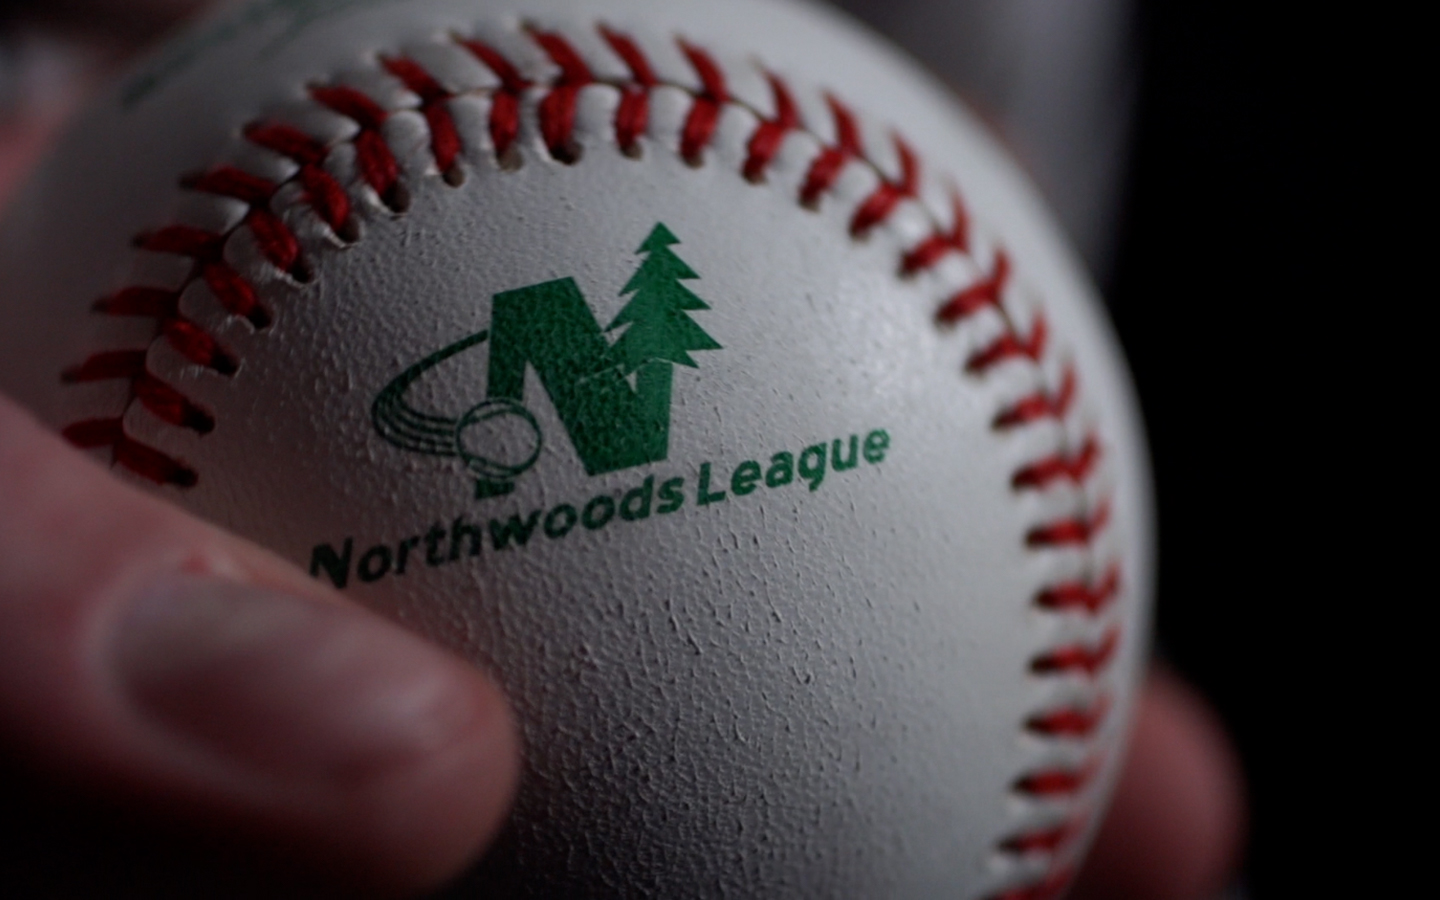 La Crosse Loggers Promotional Video